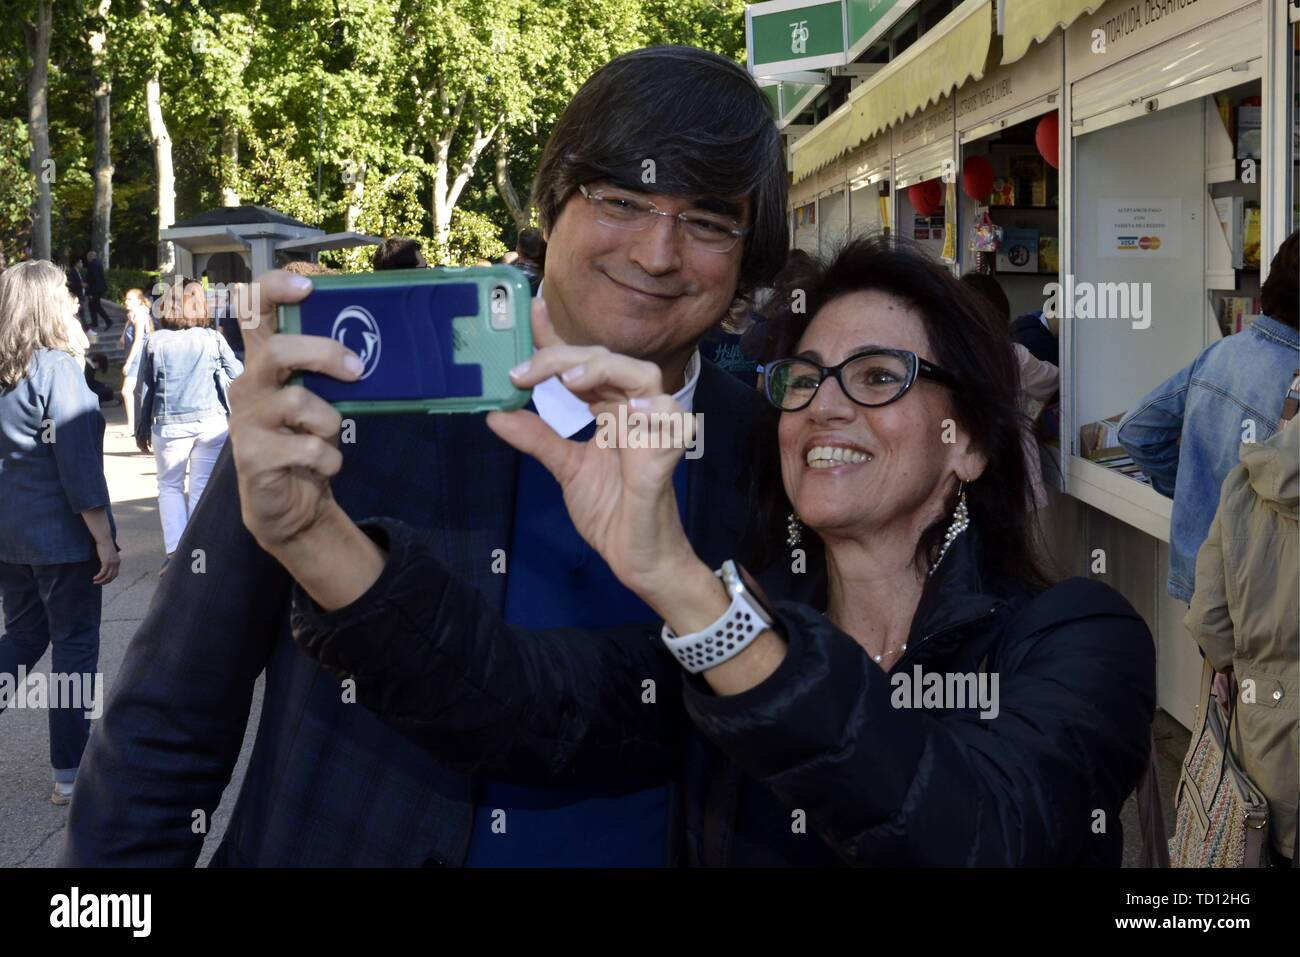 Page 3 Bayly High Resolution Stock Photography And Images Alamy Hablaron sobre el atentado de muerte, narcotráfico, corrupción entre otras cosas https www alamy com madrid spain 11th june 2019 the writer jaime bayly during the book fair in madrid tuesday june 11 2019 credit cordon pressalamy live news image248959692 html